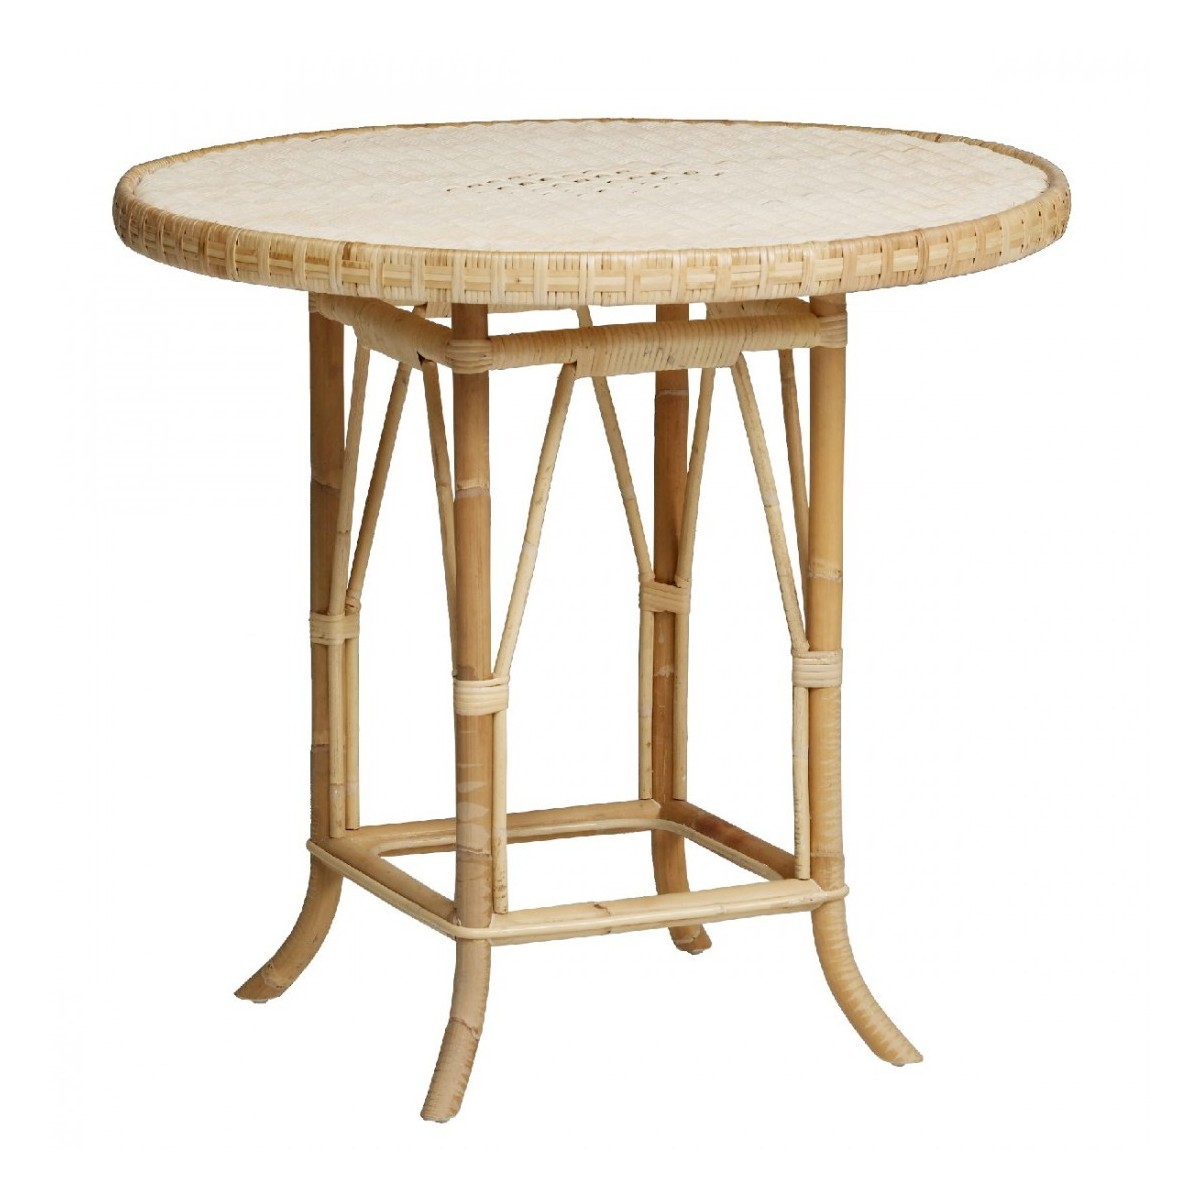 Table Ronde 80 Cm Table Grand Père Rotin Naturel Diam 80 Cm